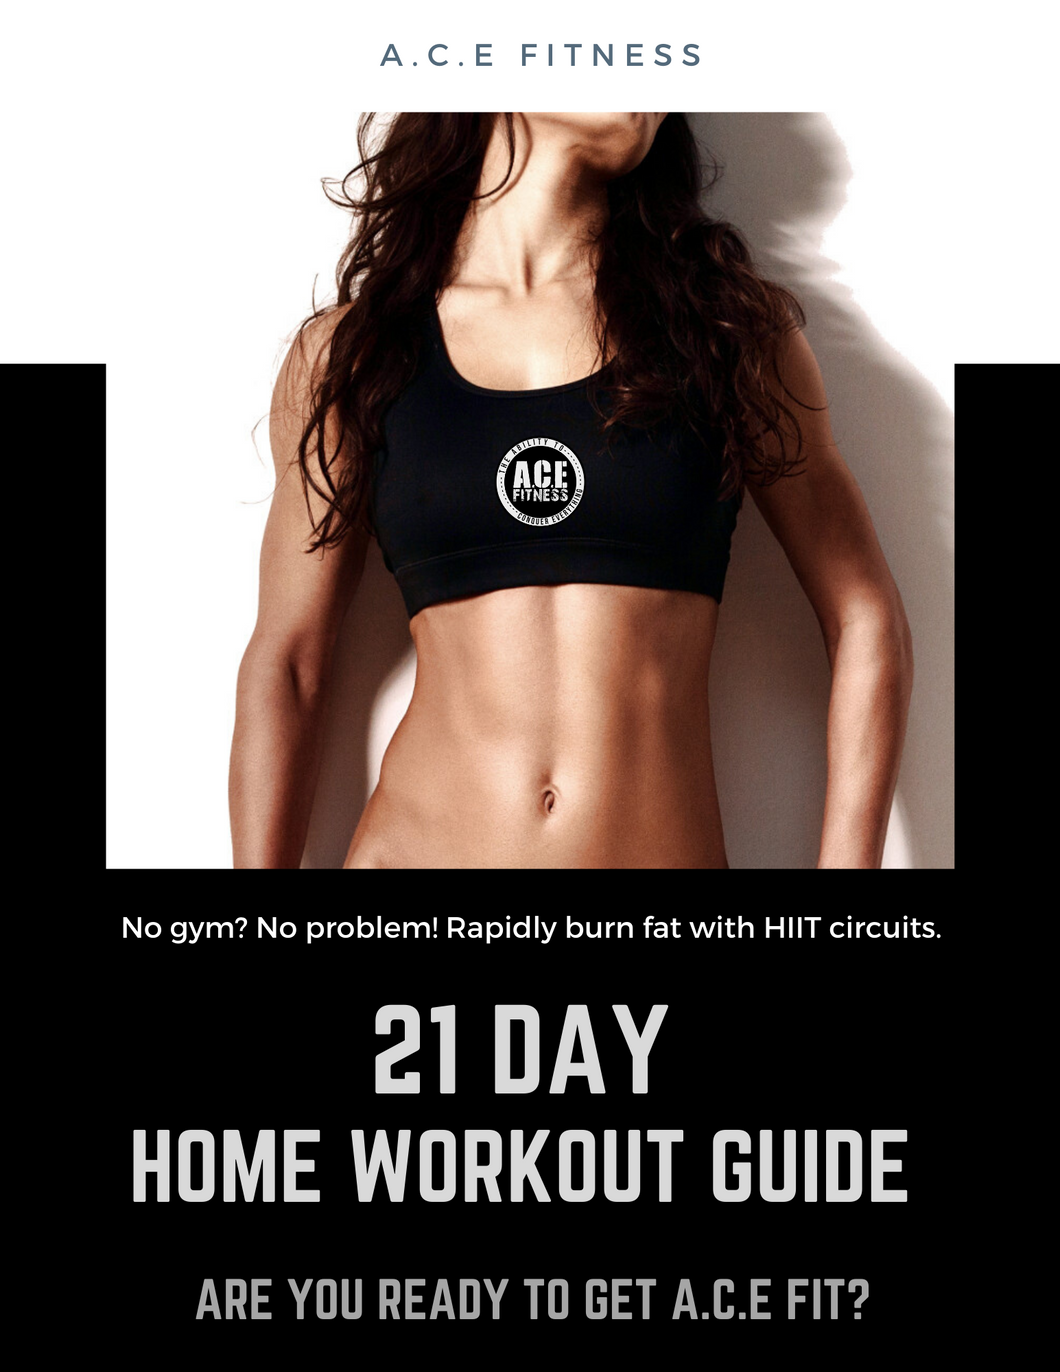 21-Day Home Workout Guide